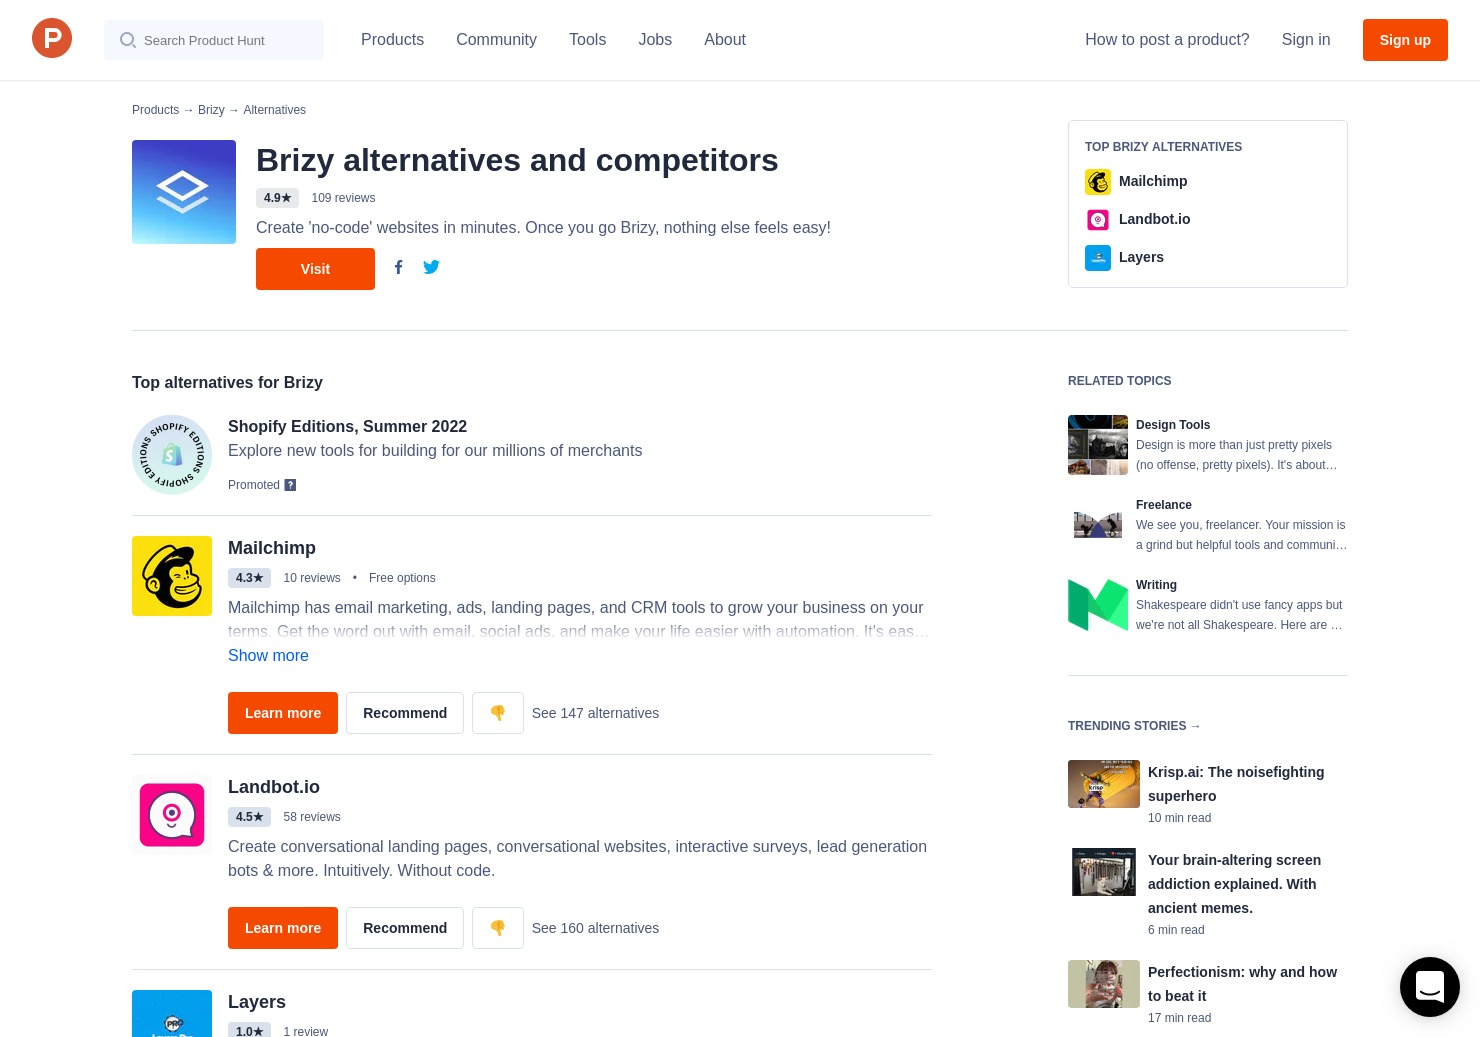 7 Alternatives To Brizy Product Hunt